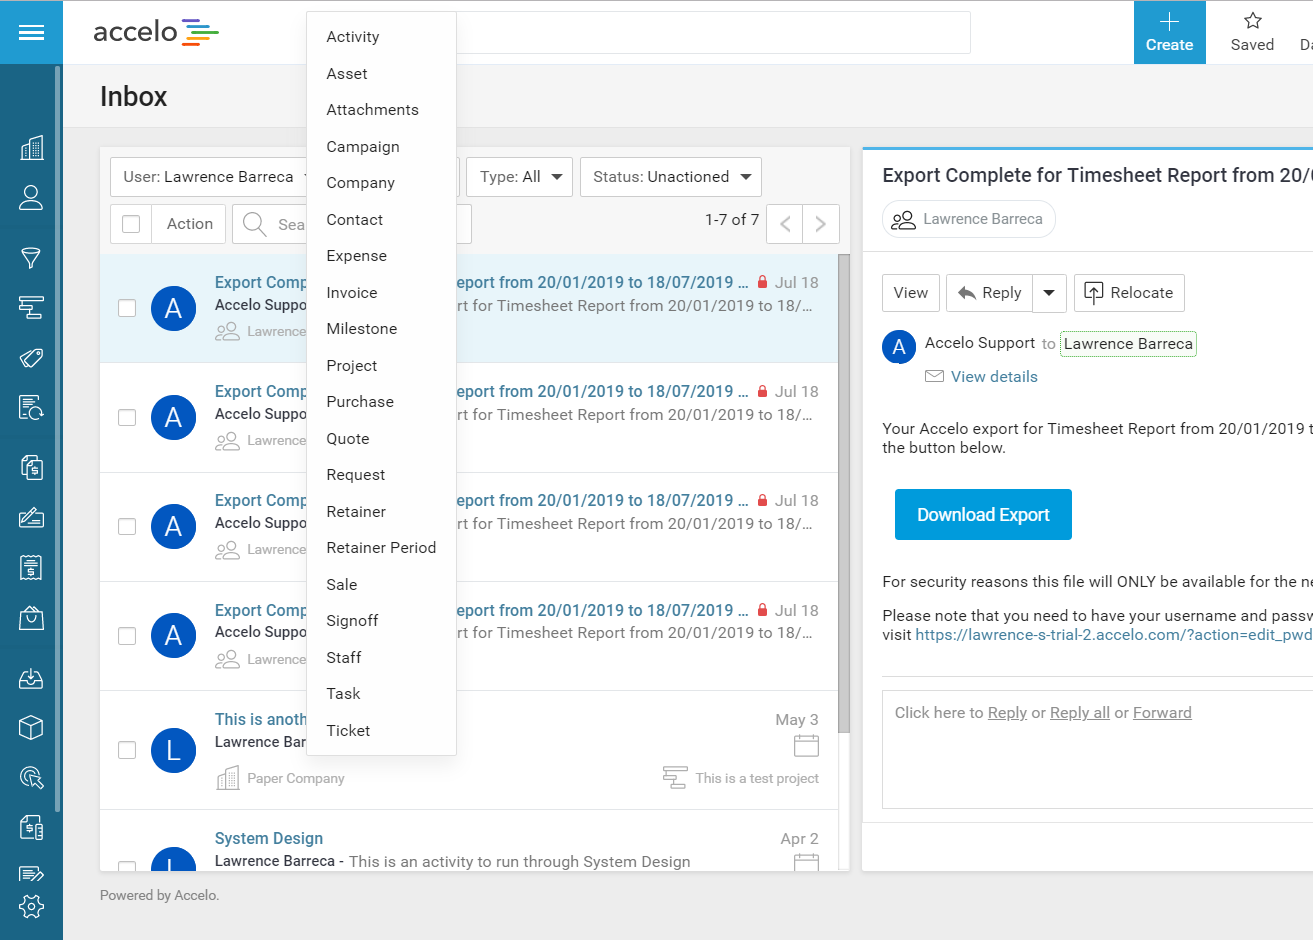 Accelo's team inbox with global search feature for messages